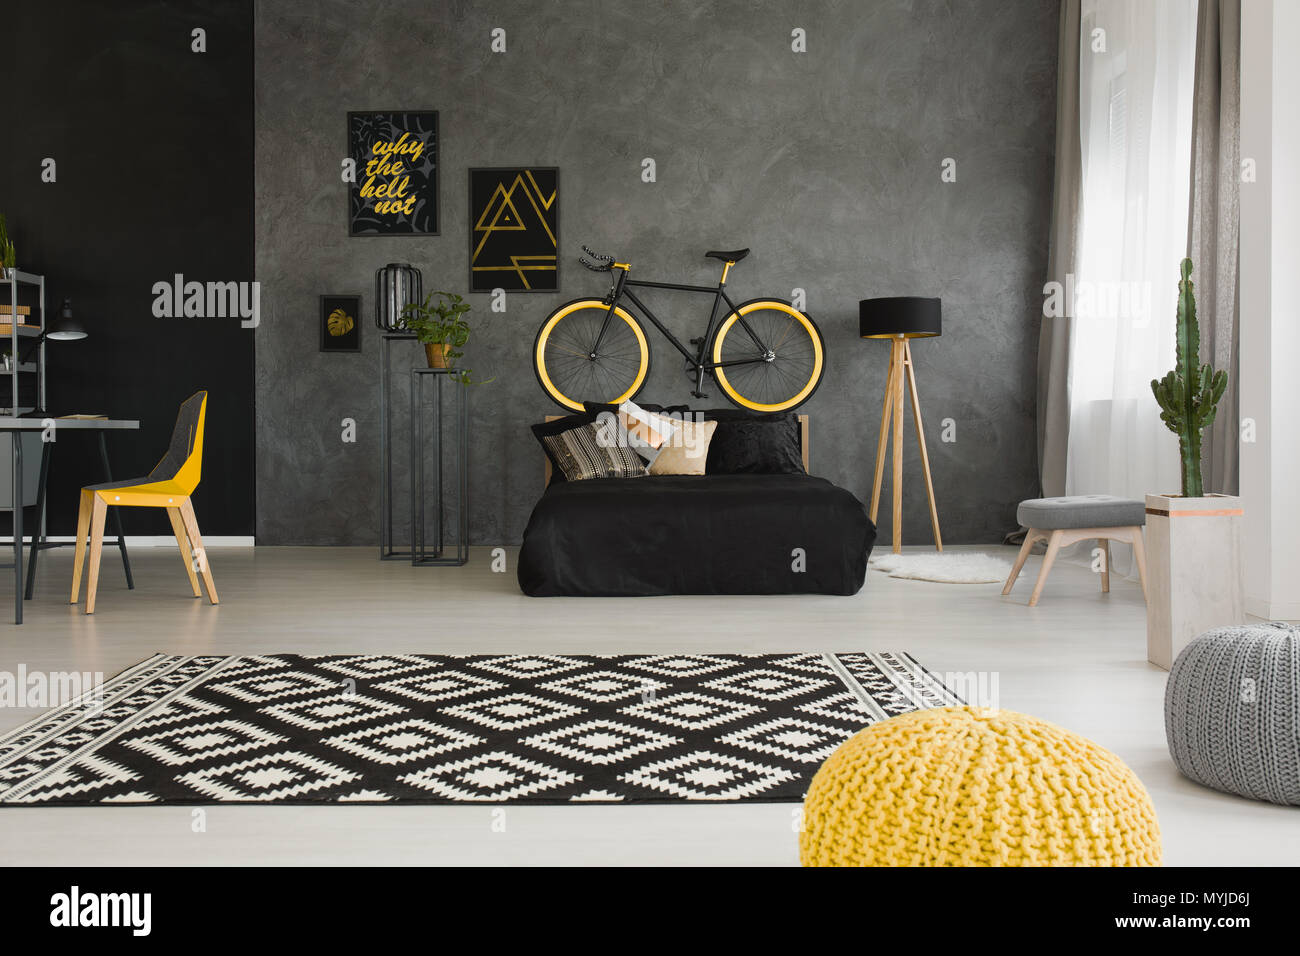 Bicycle above black bed in dark open space interior with pouf and yellow chair at desk. Real photo - Stock Image